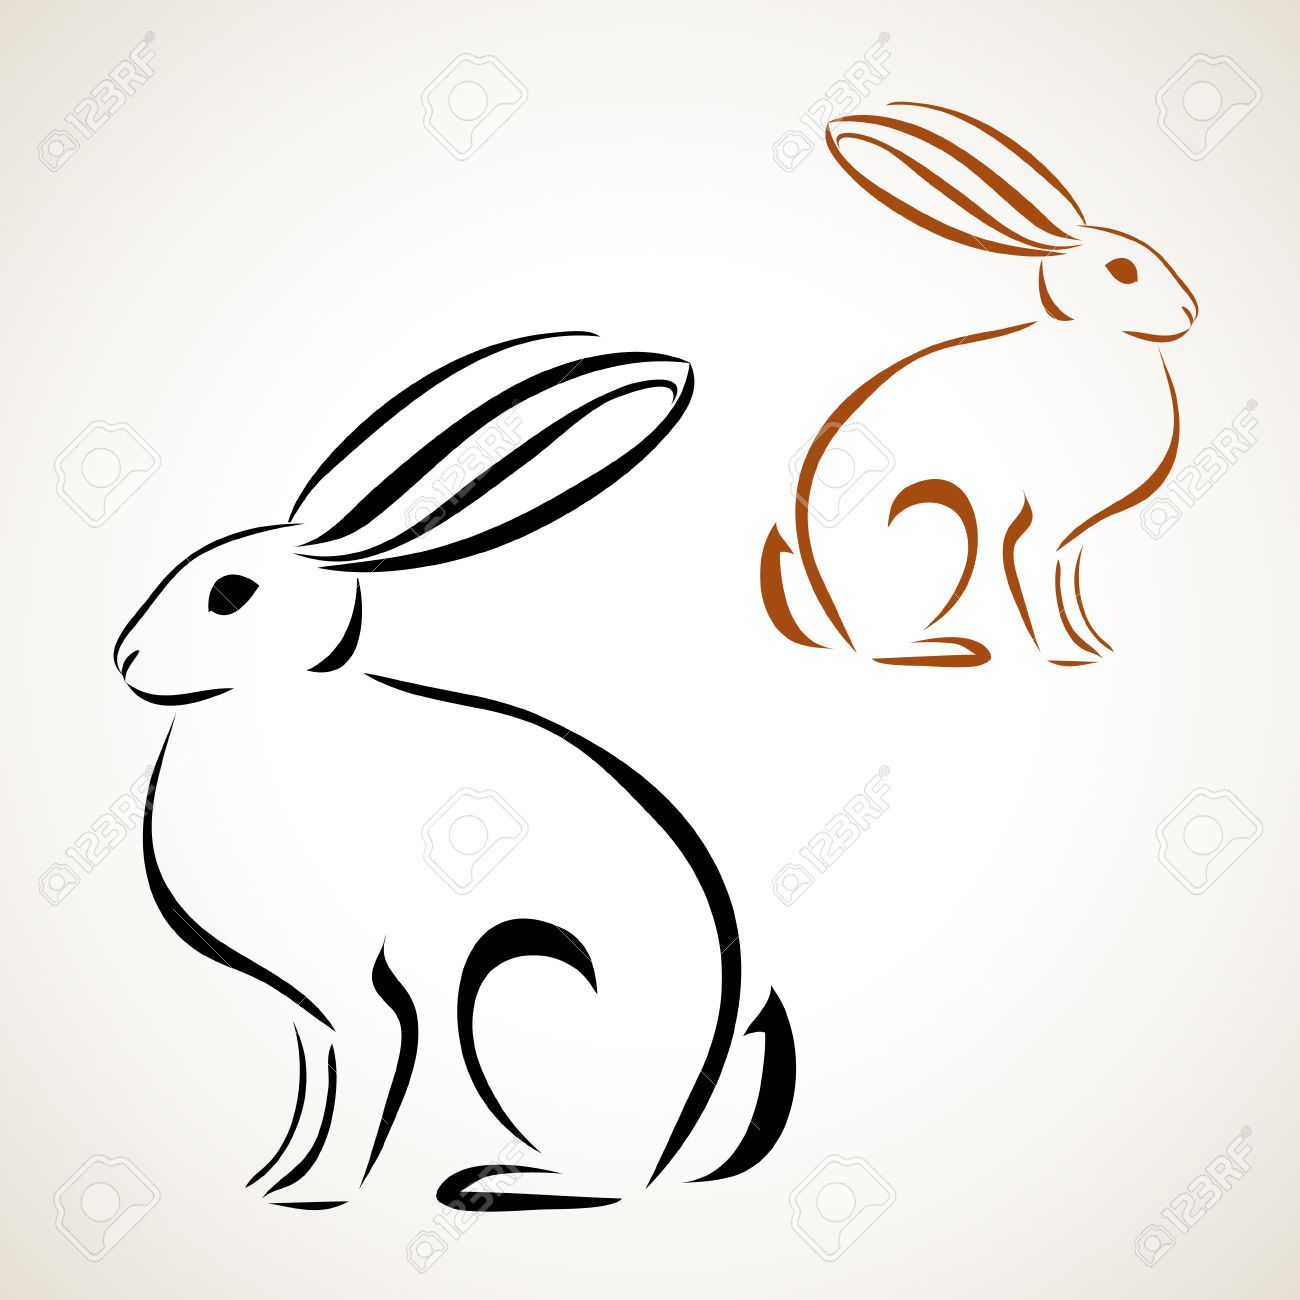 hight resolution of easter card with rabbit outline royalty free cliparts vectors